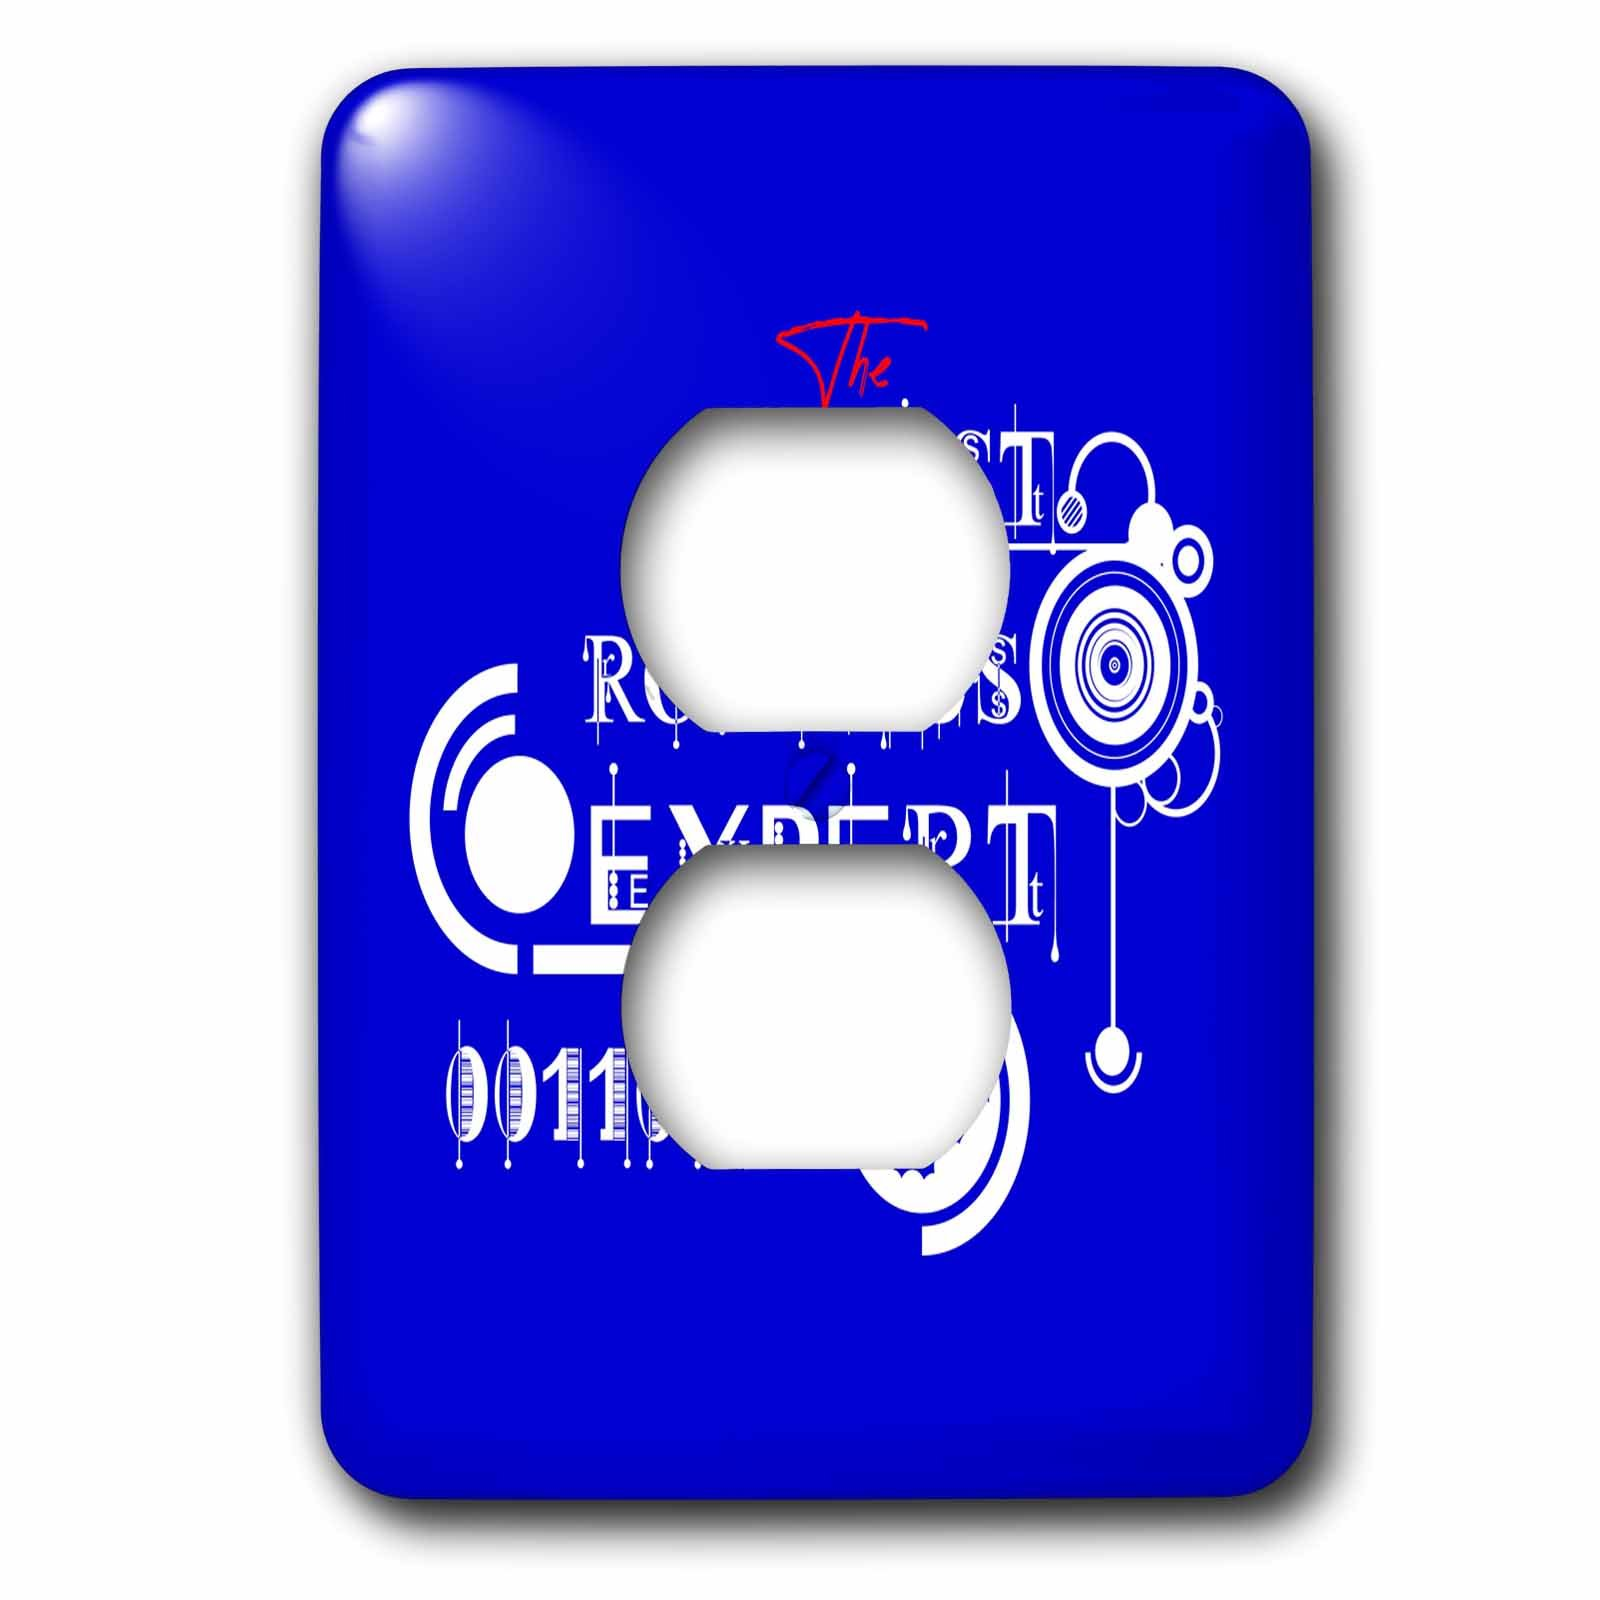 3dRose Alexis Design - Best Professional Ever - Beautiful white text The Best Robotics Expert, modern shapes on blue - Light Switch Covers - 2 plug outlet cover (lsp_286490_6)